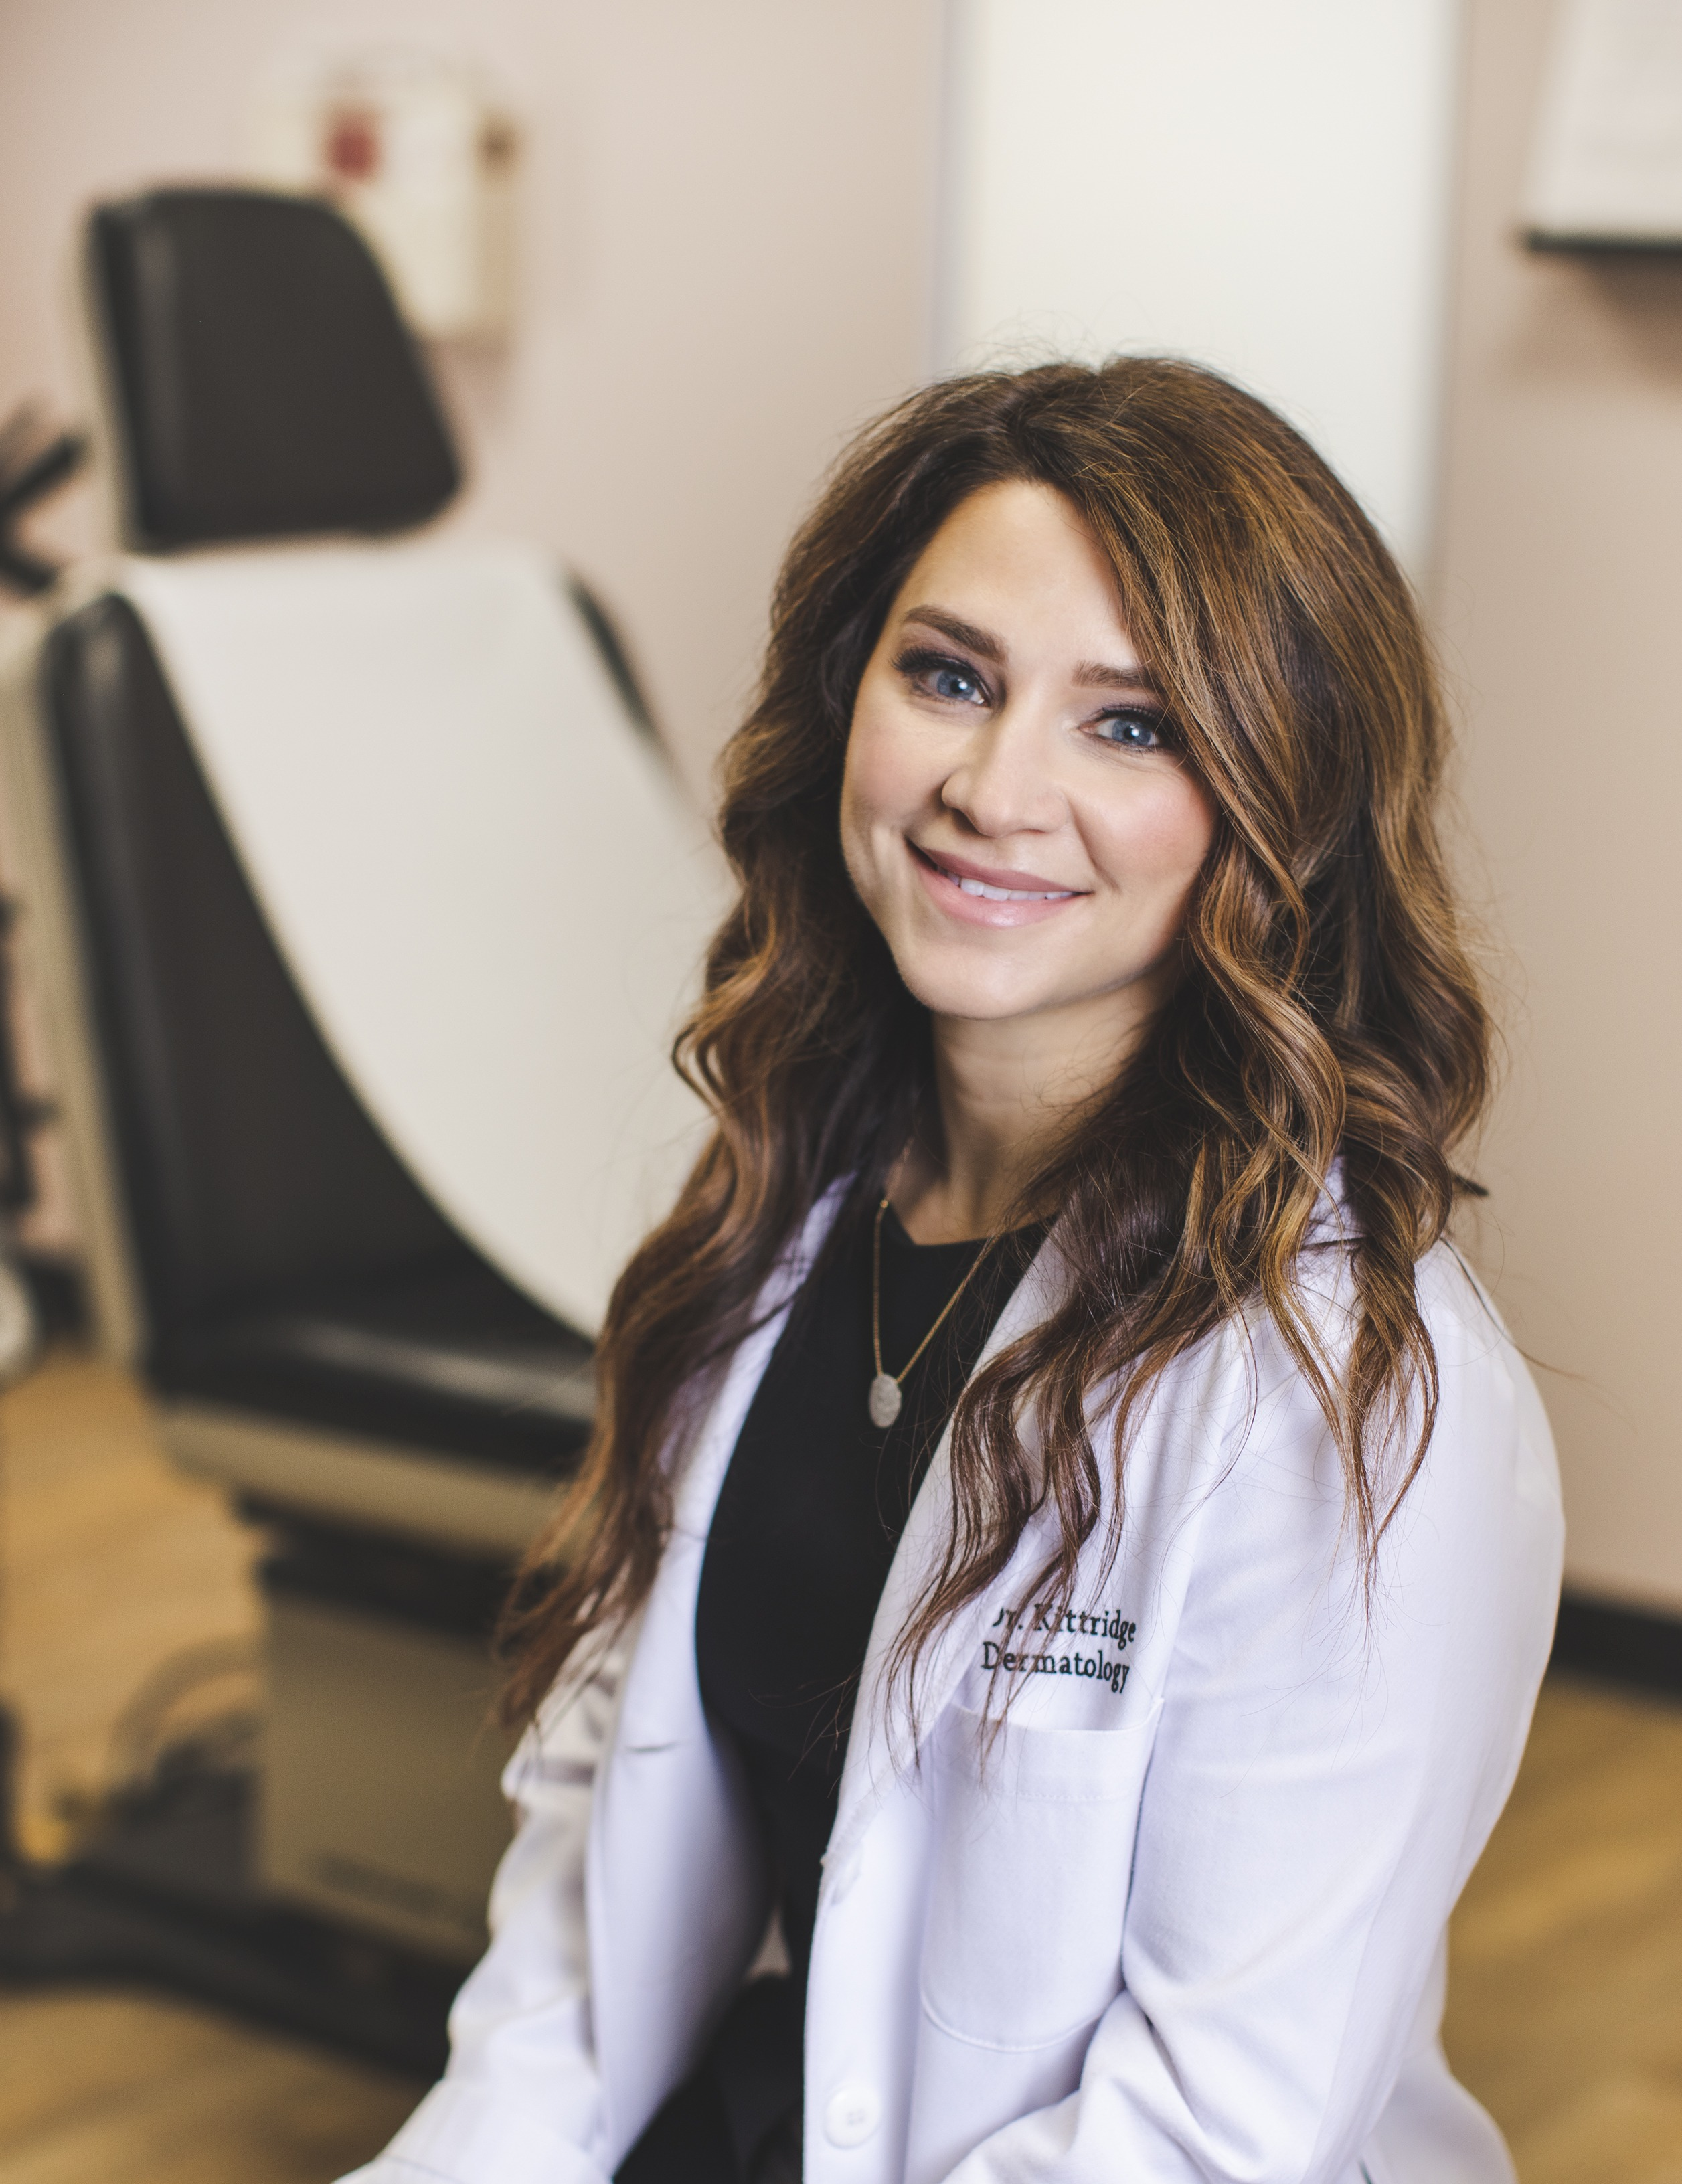 Pittsburgh's Top Dermatologist | Kittridge Dermatology